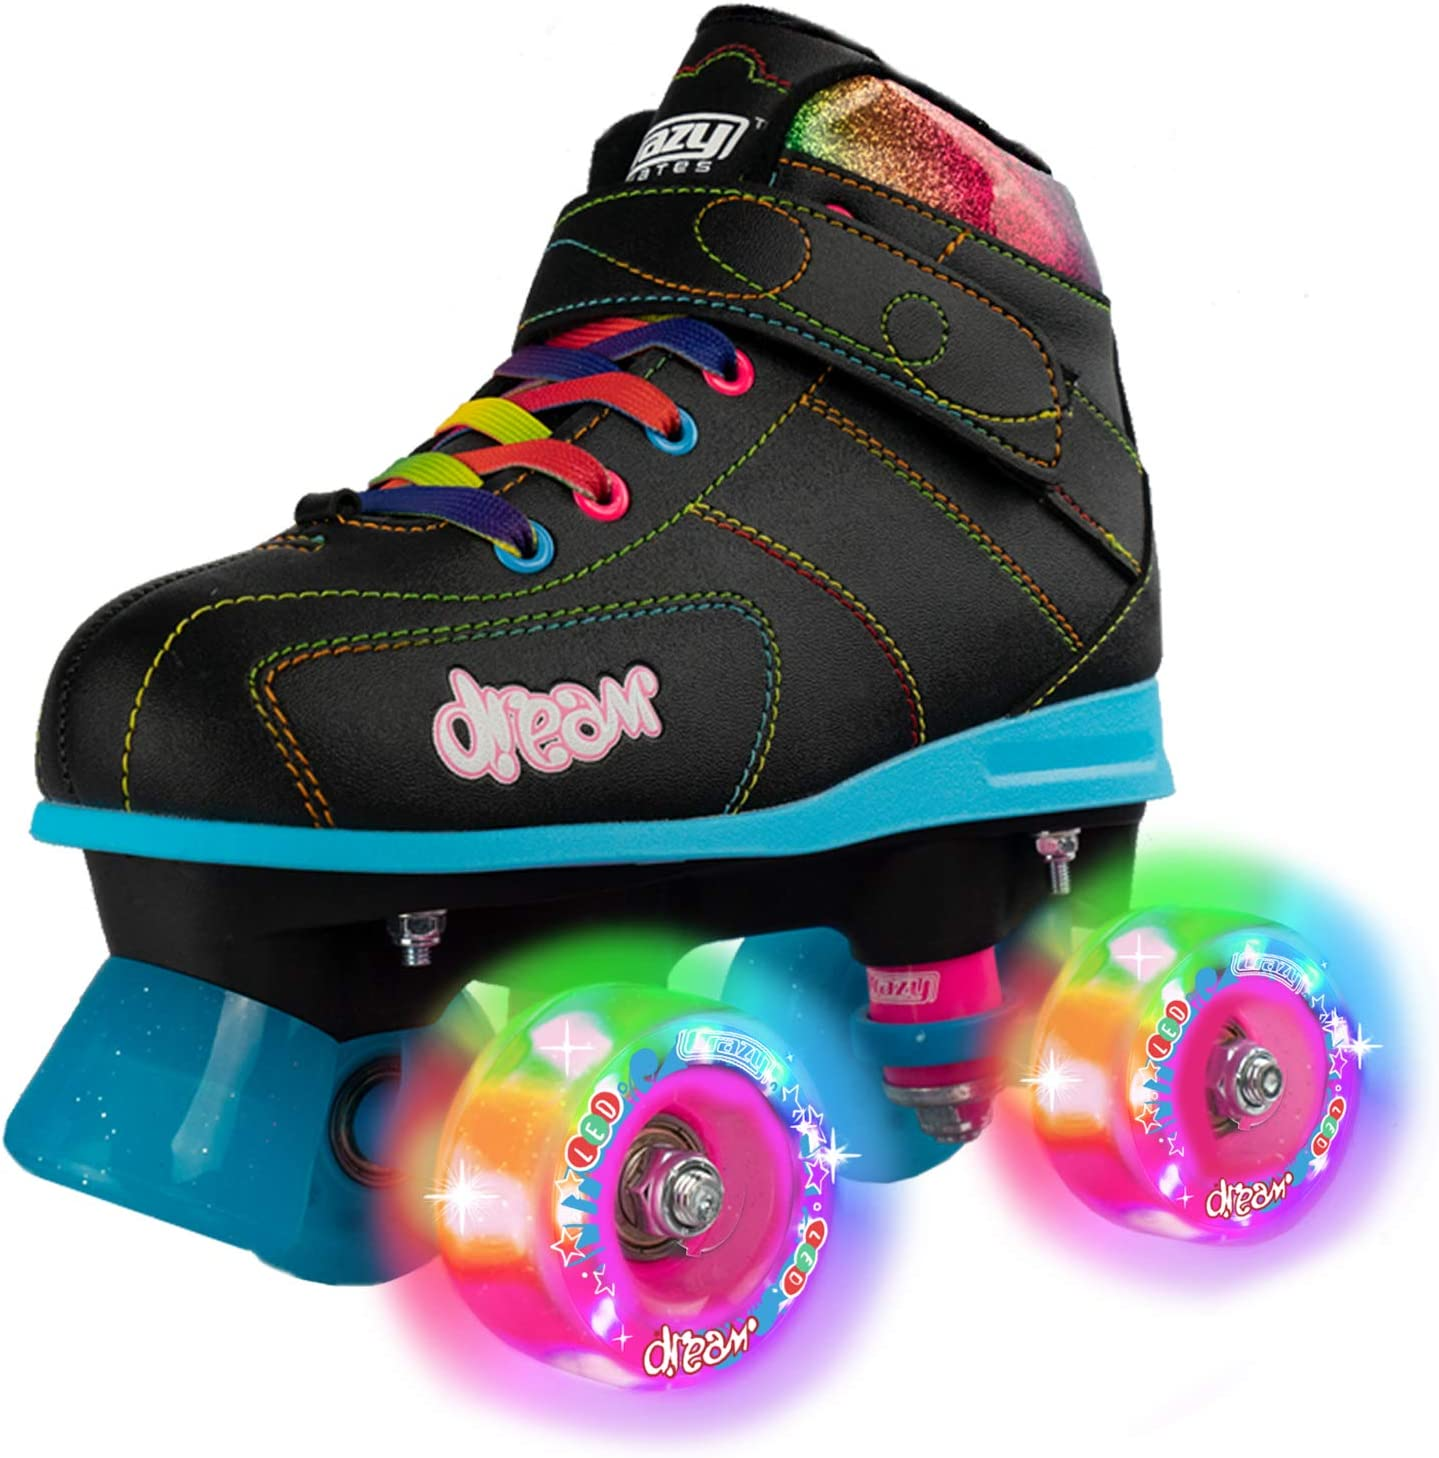 Crazy Skates Dream Roller Skates for Girls with LED Light-up Wheels